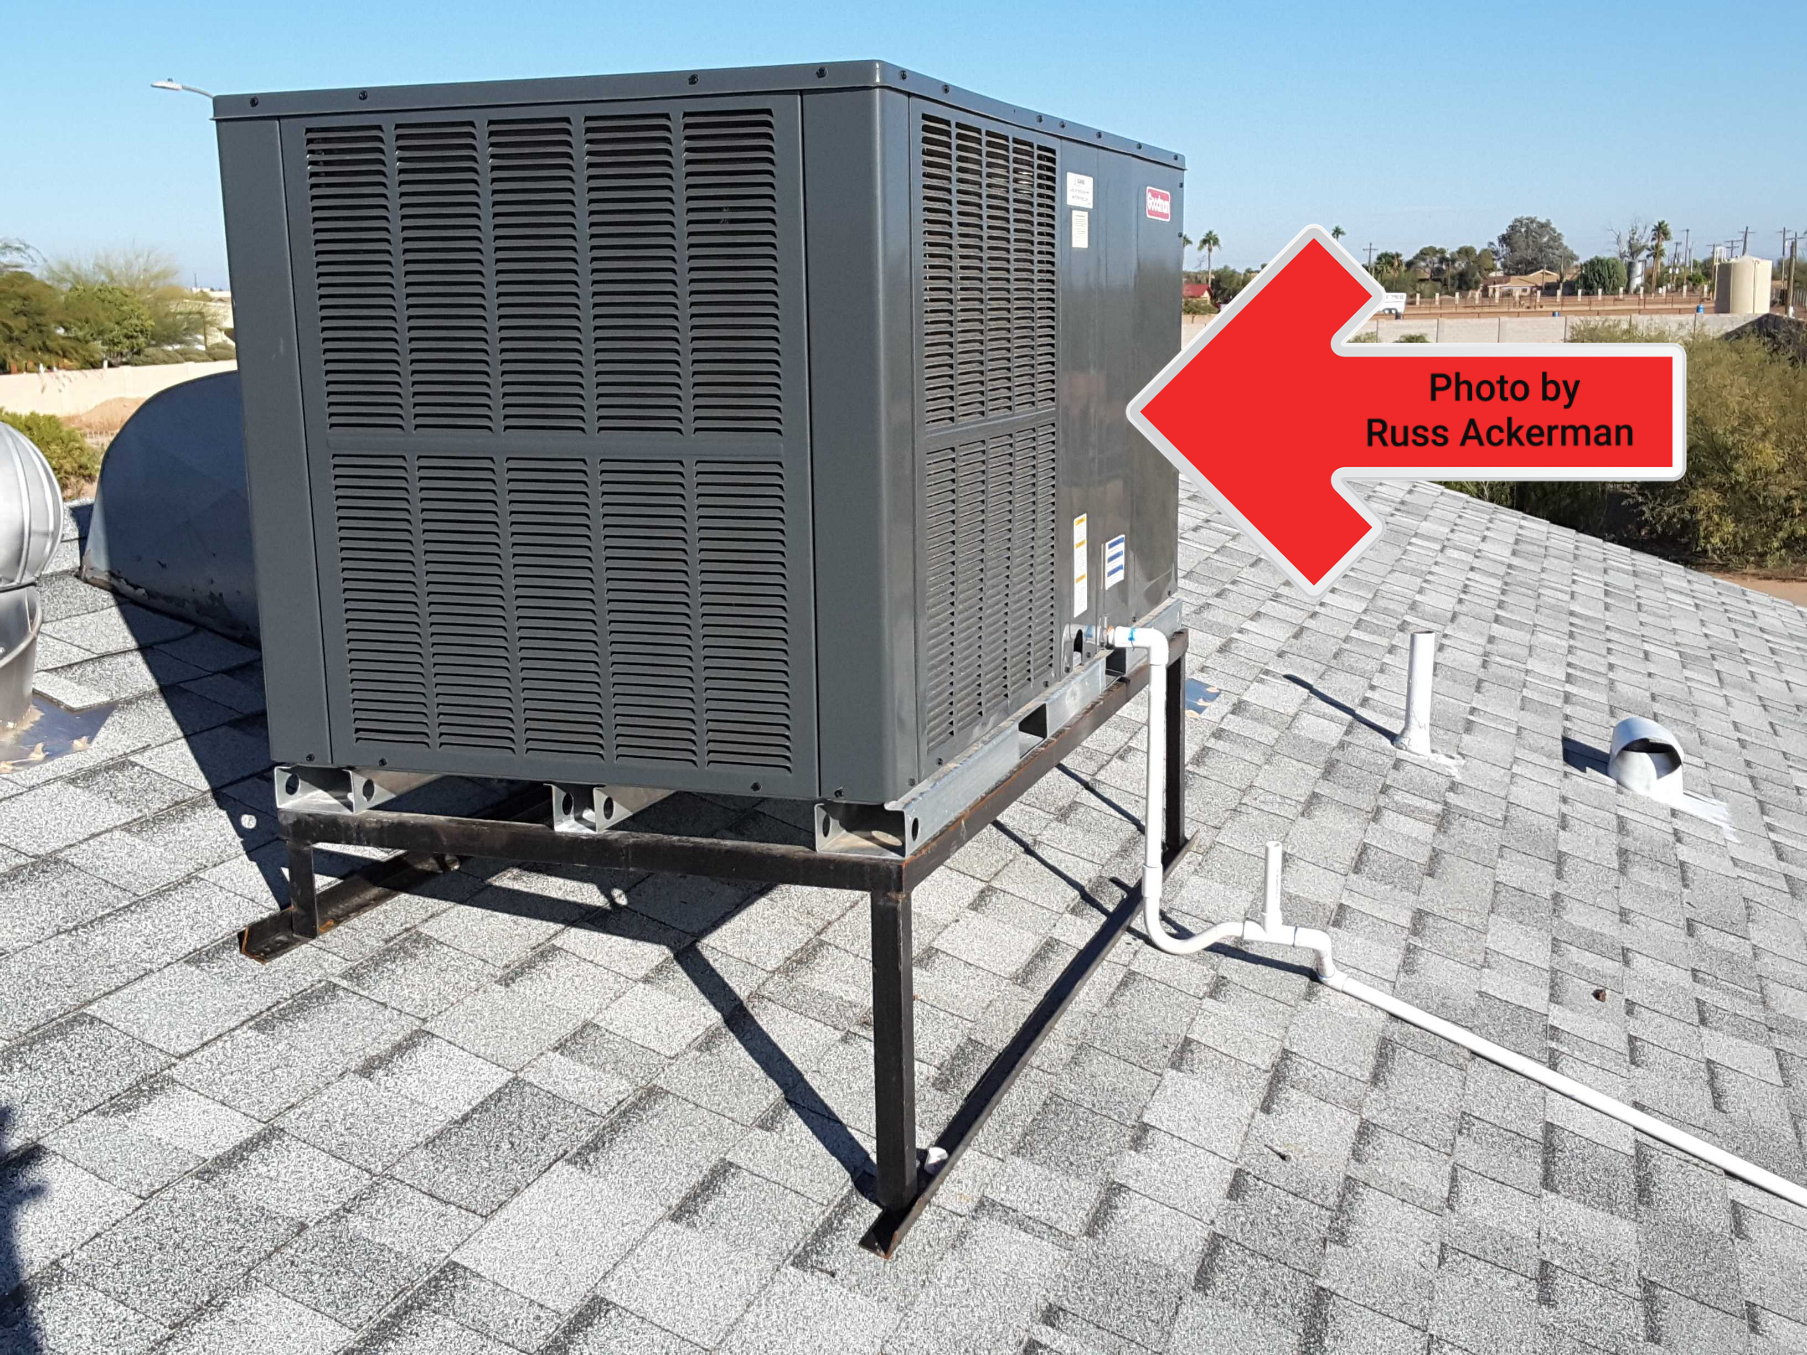 Rooftop HVAC system are out of sight and out of mind. Most of the time they are never serviced or cleaned until they break down.